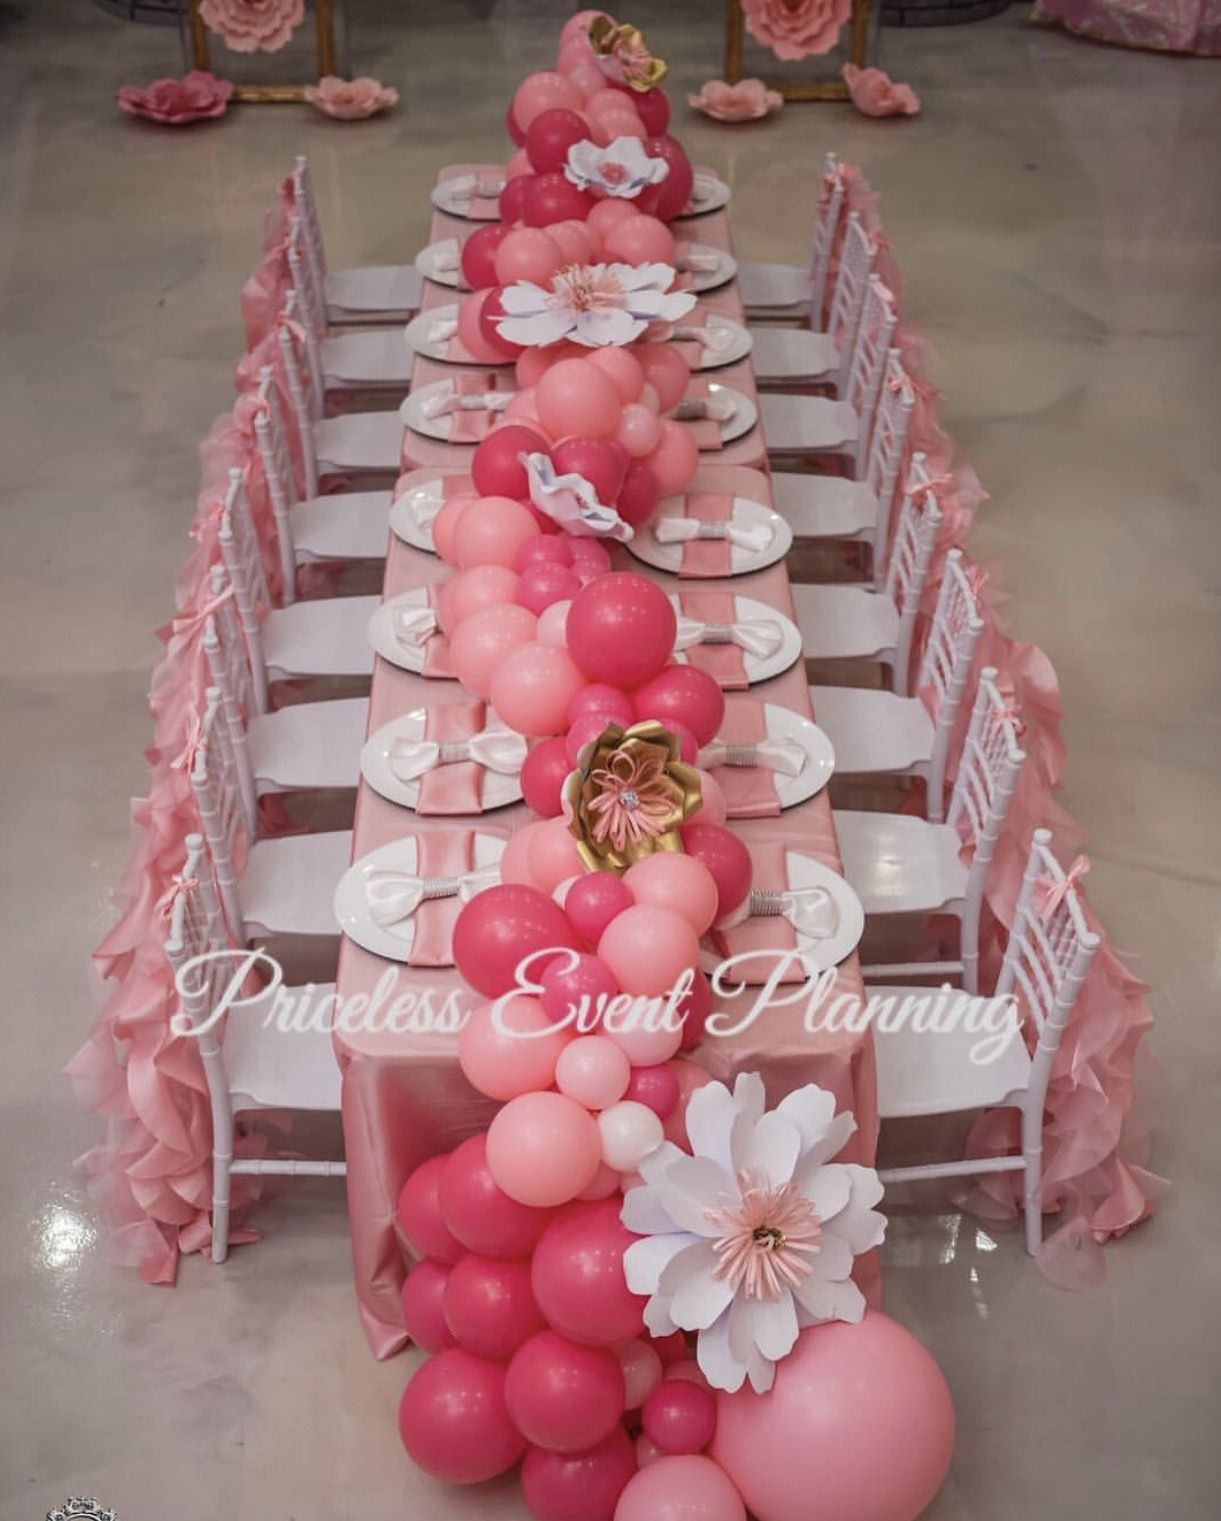 Pin By Angela Everett On Party Ideas: Pin By Angela O. On Events